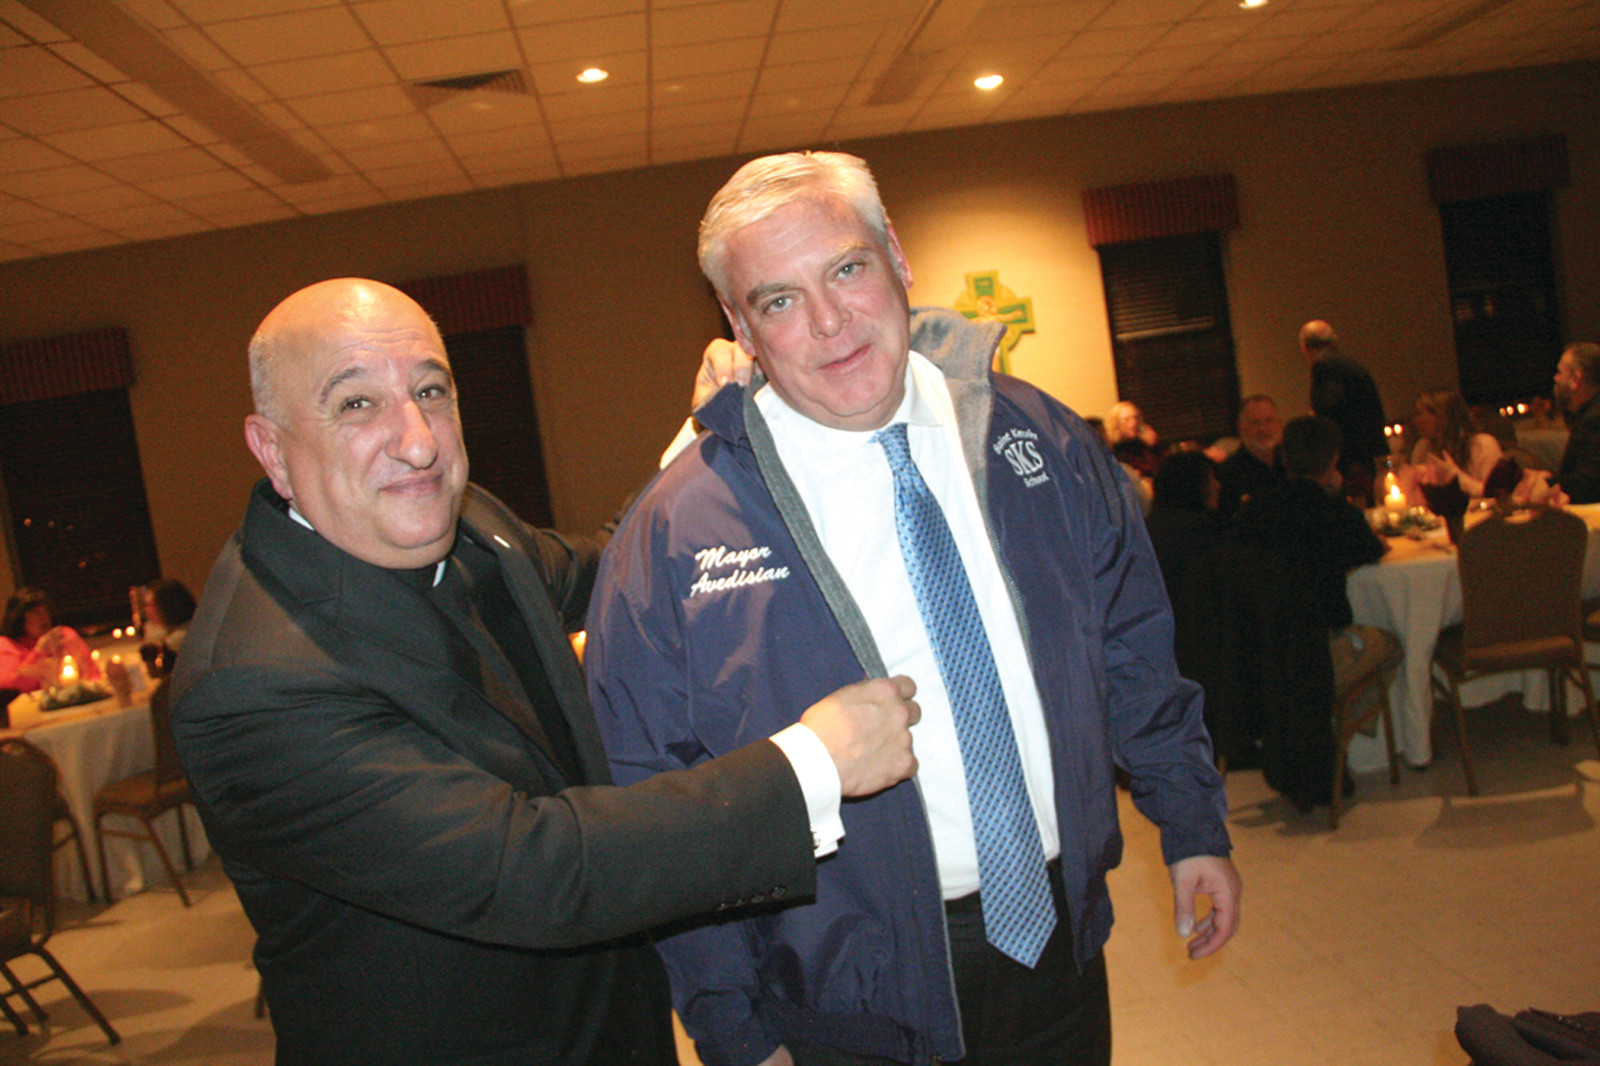 JUST WHAT'S NEEDED ON A SNOWY NIGHT: Father Robert Marciano, pastor of St. Kevin Church, presented Mayor Scott Avedisian with a jacket in appreciation of the mayor's efforts on behalf of St. Kevin School and its students.